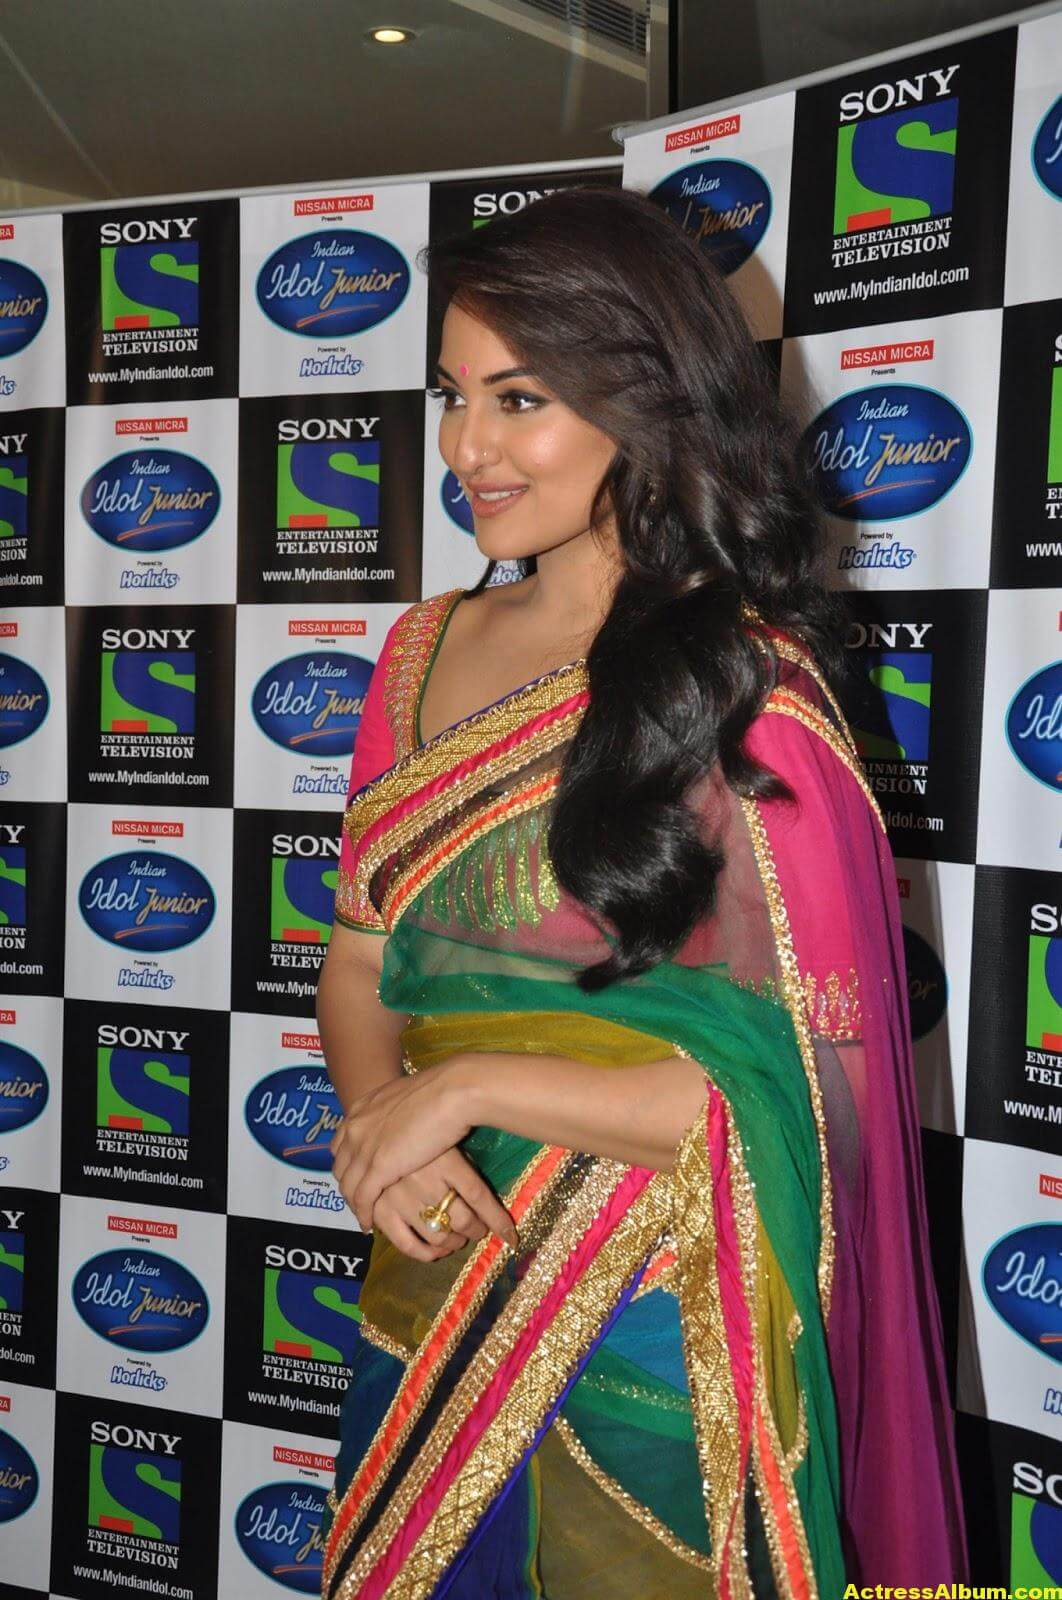 Sonakshi Sinha Looks Spicy In Colorful Saree Photoshoot 4